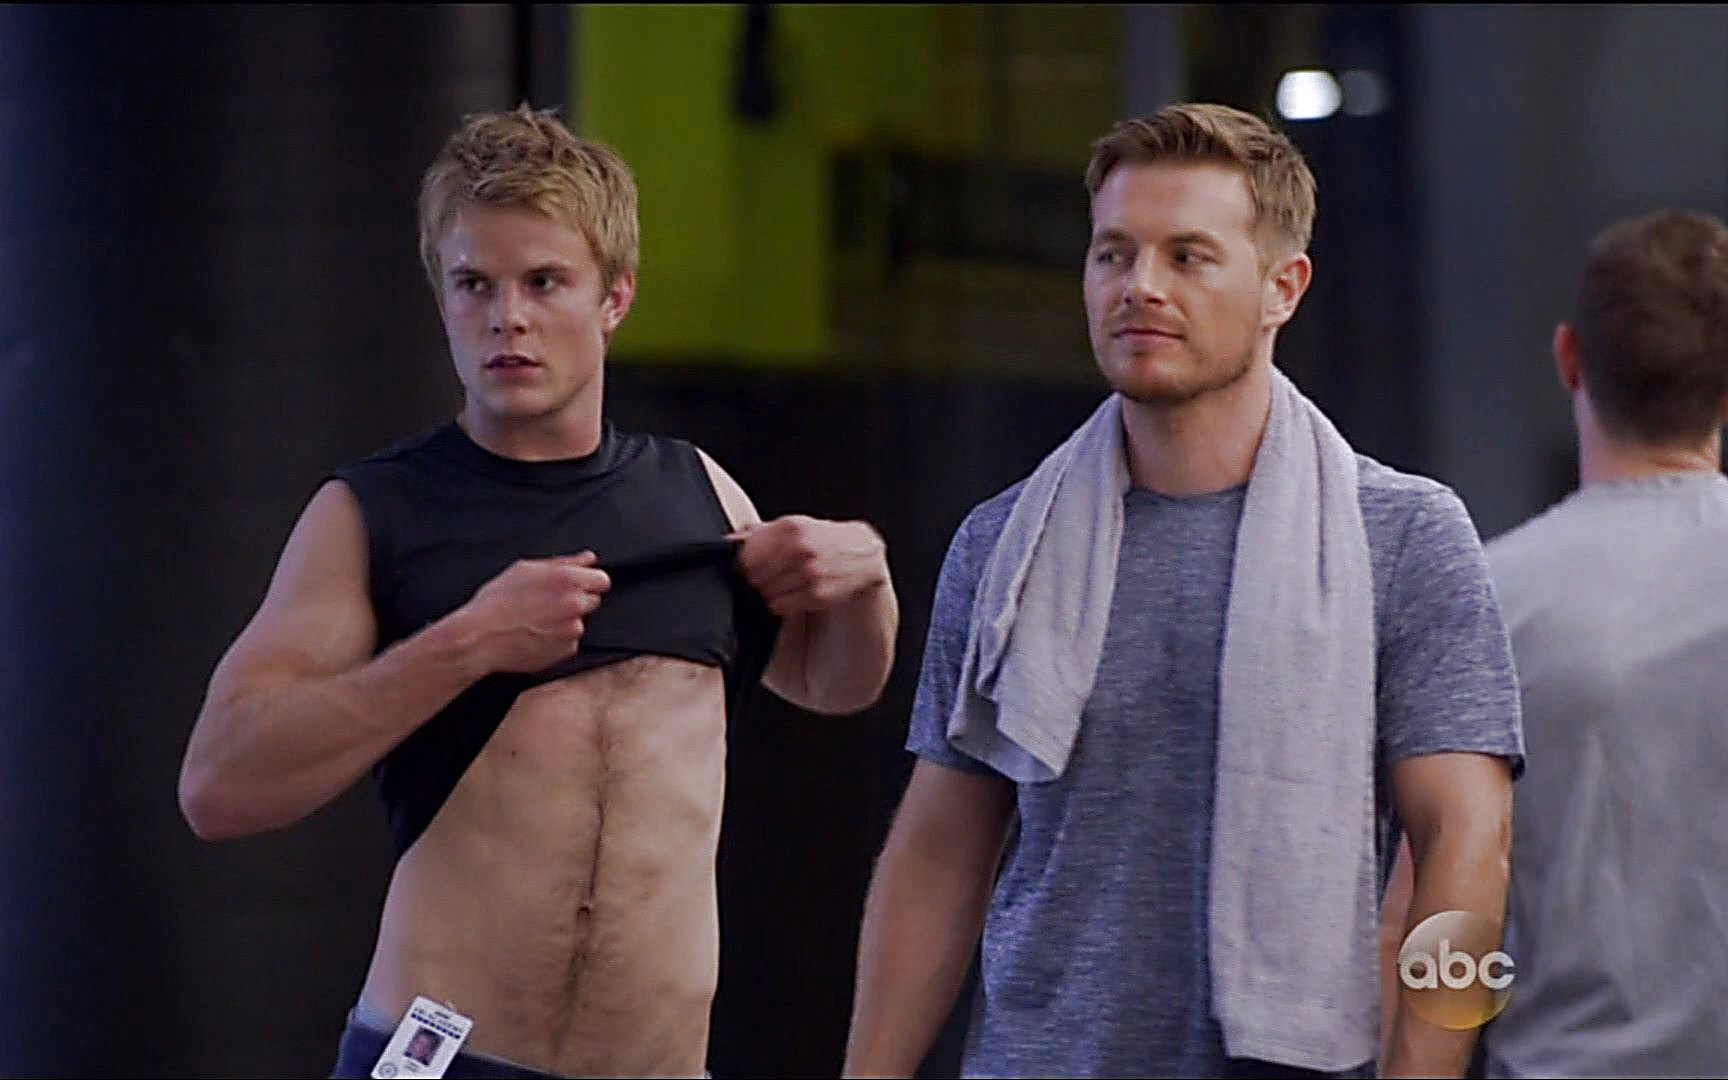 Graham Rogers sexy shirtless scene October 18, 2015, 2am